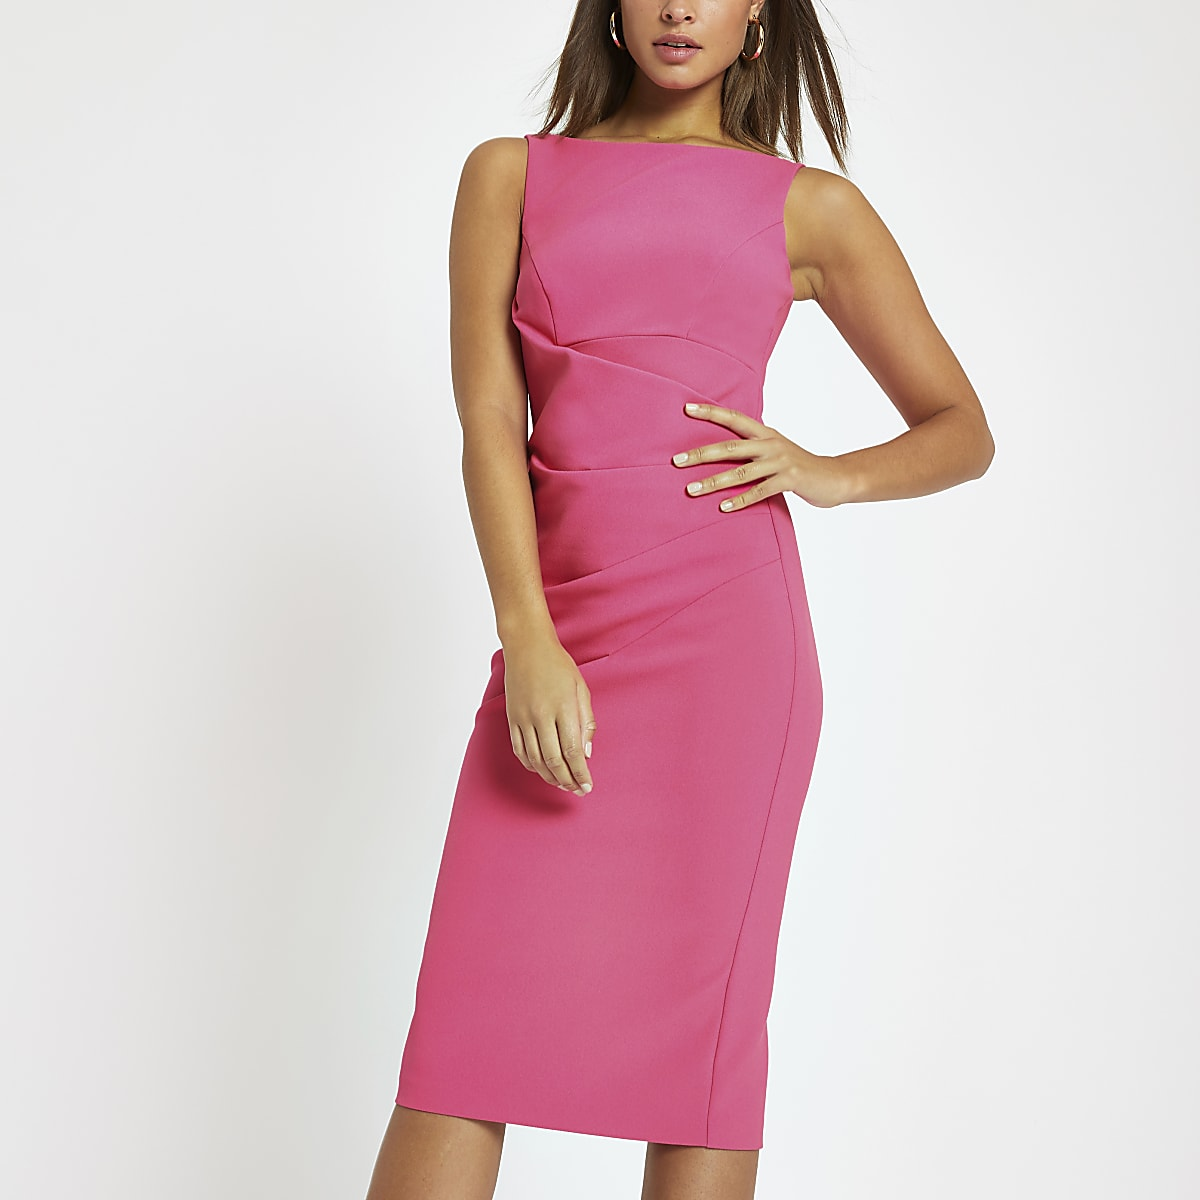 fef4dea88ae6 Bright pink bodycon midi dress - Bodycon Dresses - Dresses - women